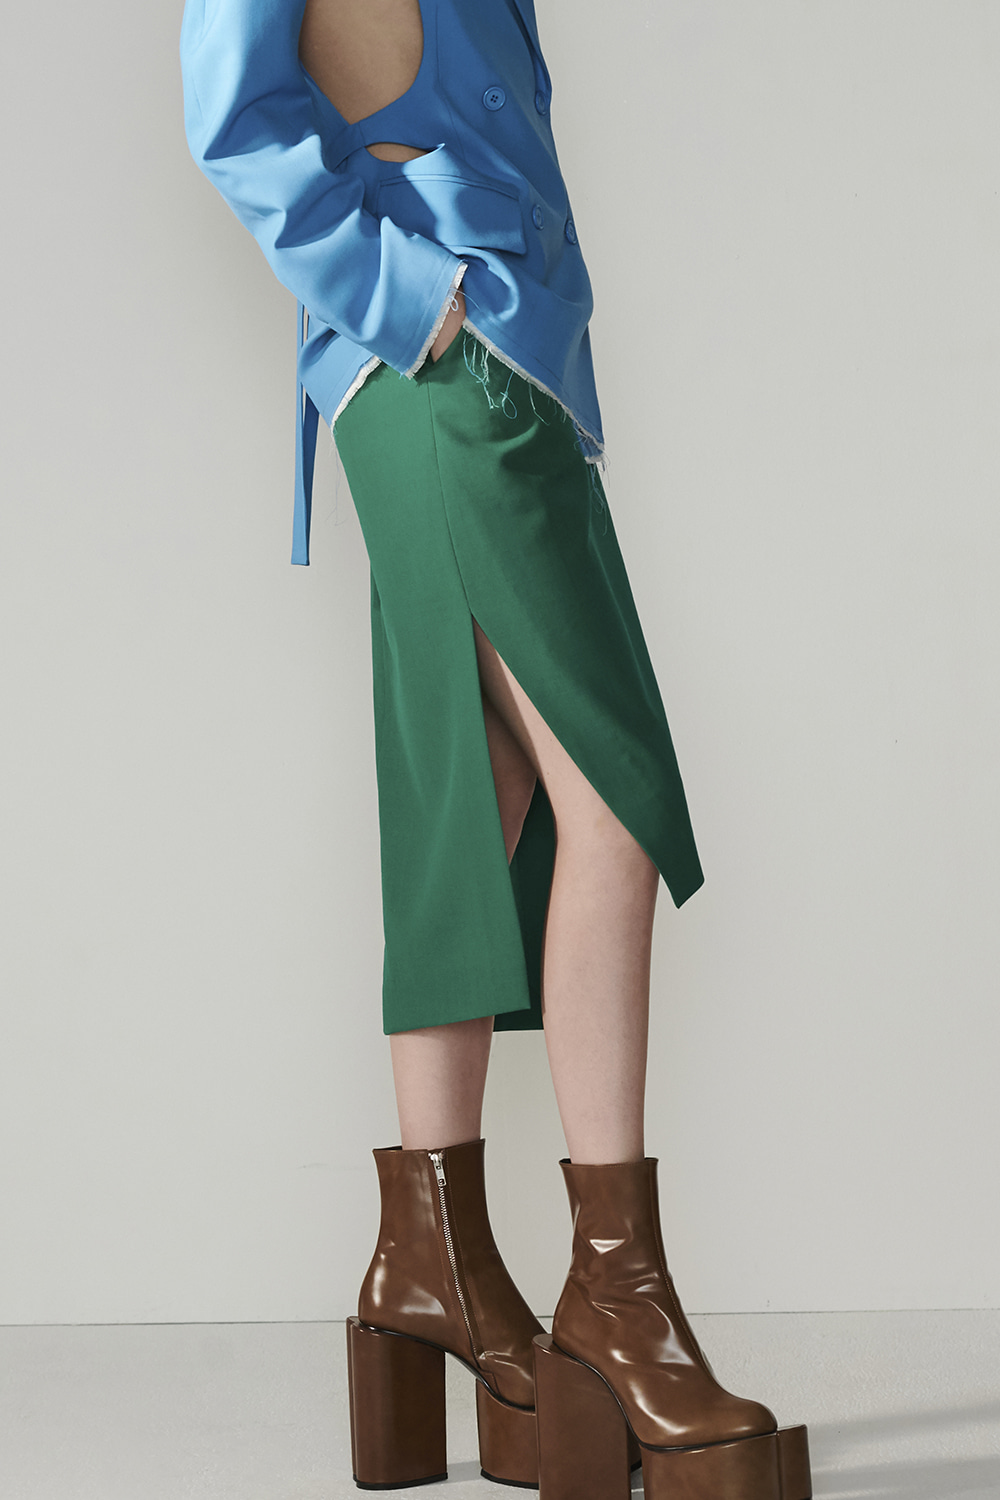 SS21 DIAGONAL HEM BELTED GREEN SKIRT